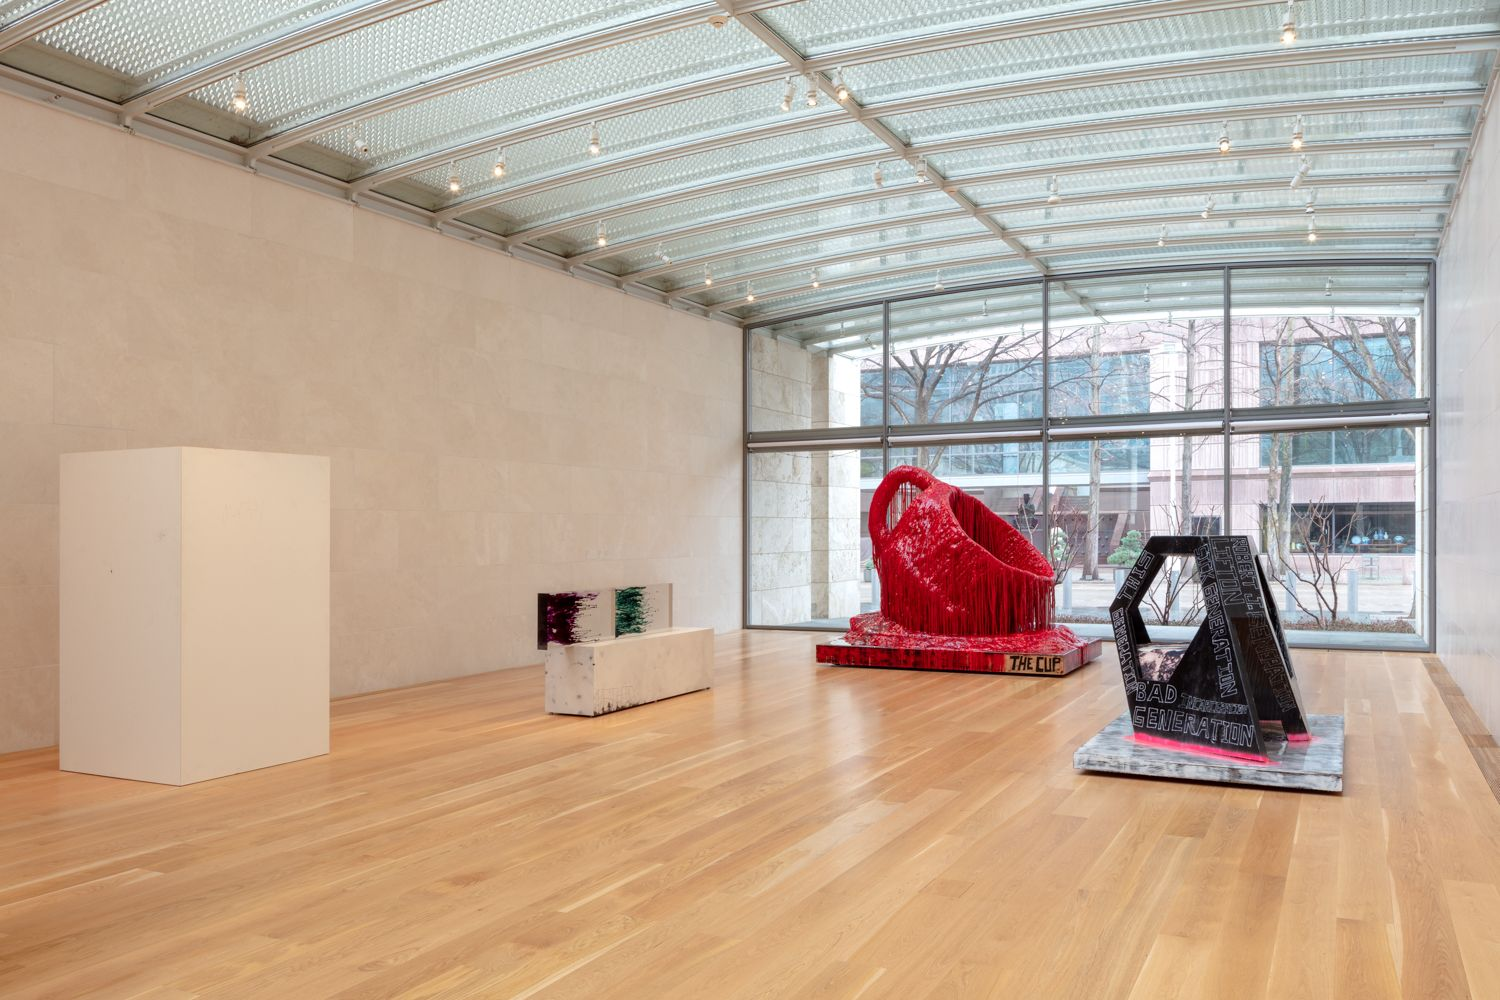 Installation view, Sterling Ruby: Sculpture, Nasher Sculpture Center, Dallas, TX, 2019